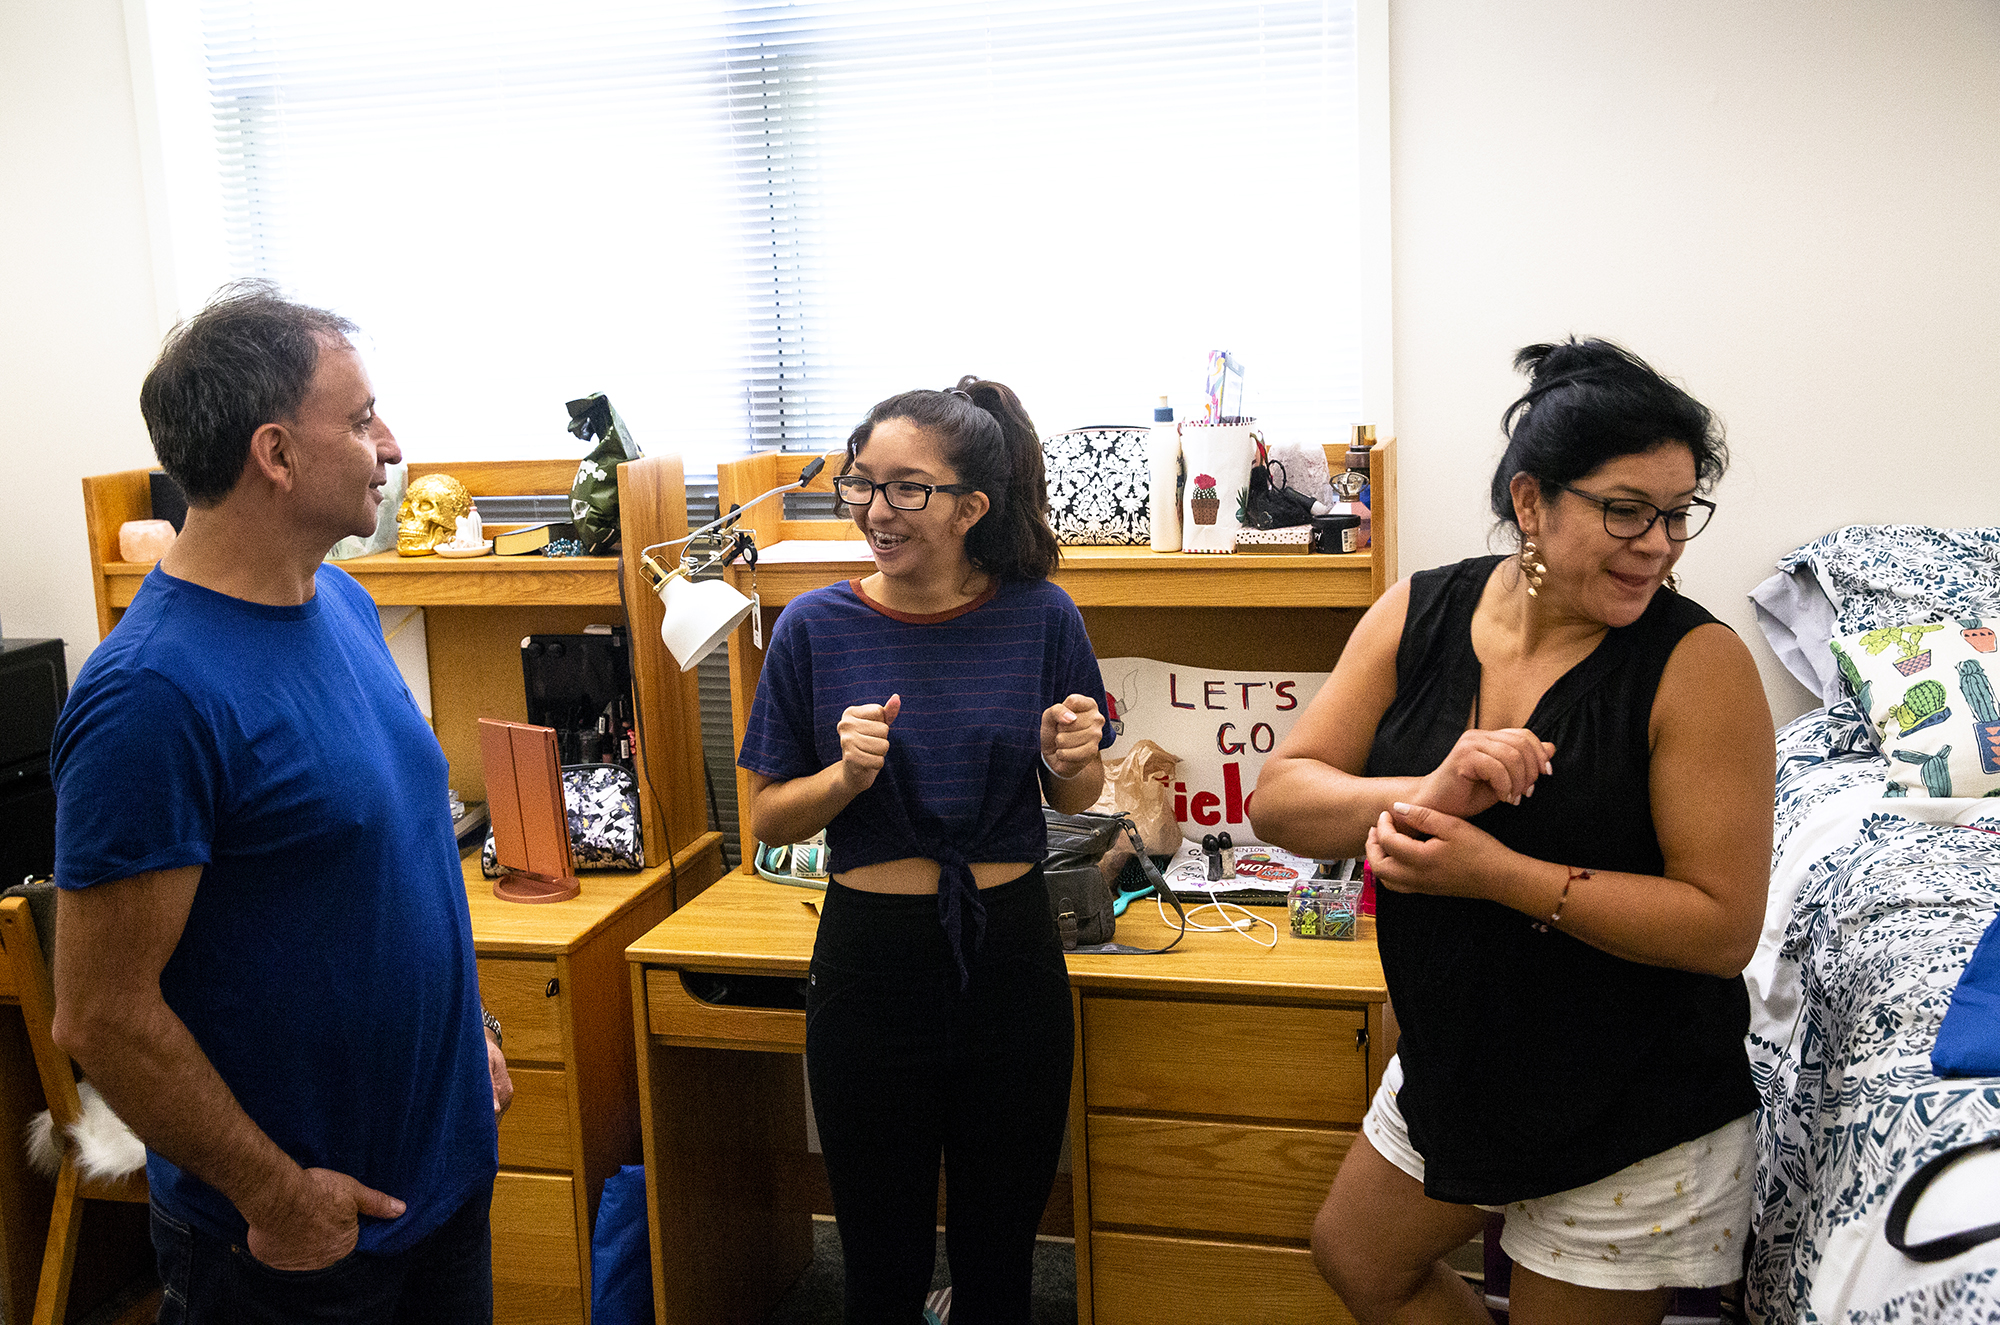 """I think I'm ready. I'm excited,"" says Cielo Delgado about her freshman year of college. Delgado, who is from Chicago, moved into her room in Lincoln Residence Hall at the University of Illinois Springfield Wednesday, Aug. 22, 2018 with help from her parents, Juan and Edith, and her sister Marisol. According to the university, approximately 300 freshman arrived for the official move-in, with upperclassmen arriving Friday. [Rich Saal/The State Journal-Register]"